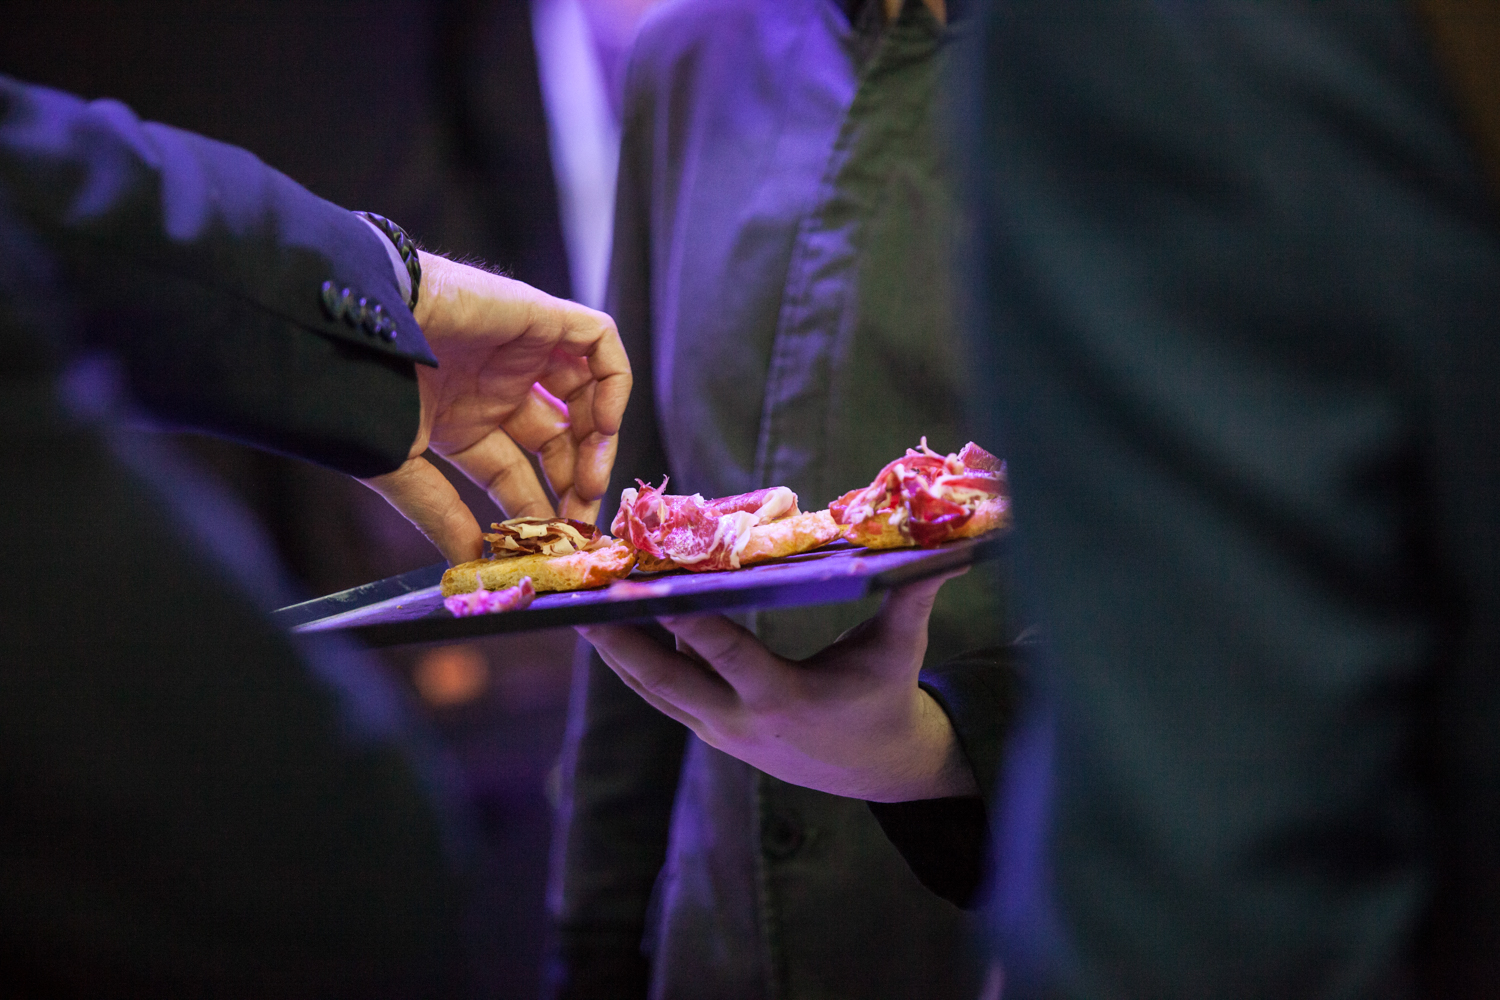 Royal Catering en el Mobile World Congress 2018